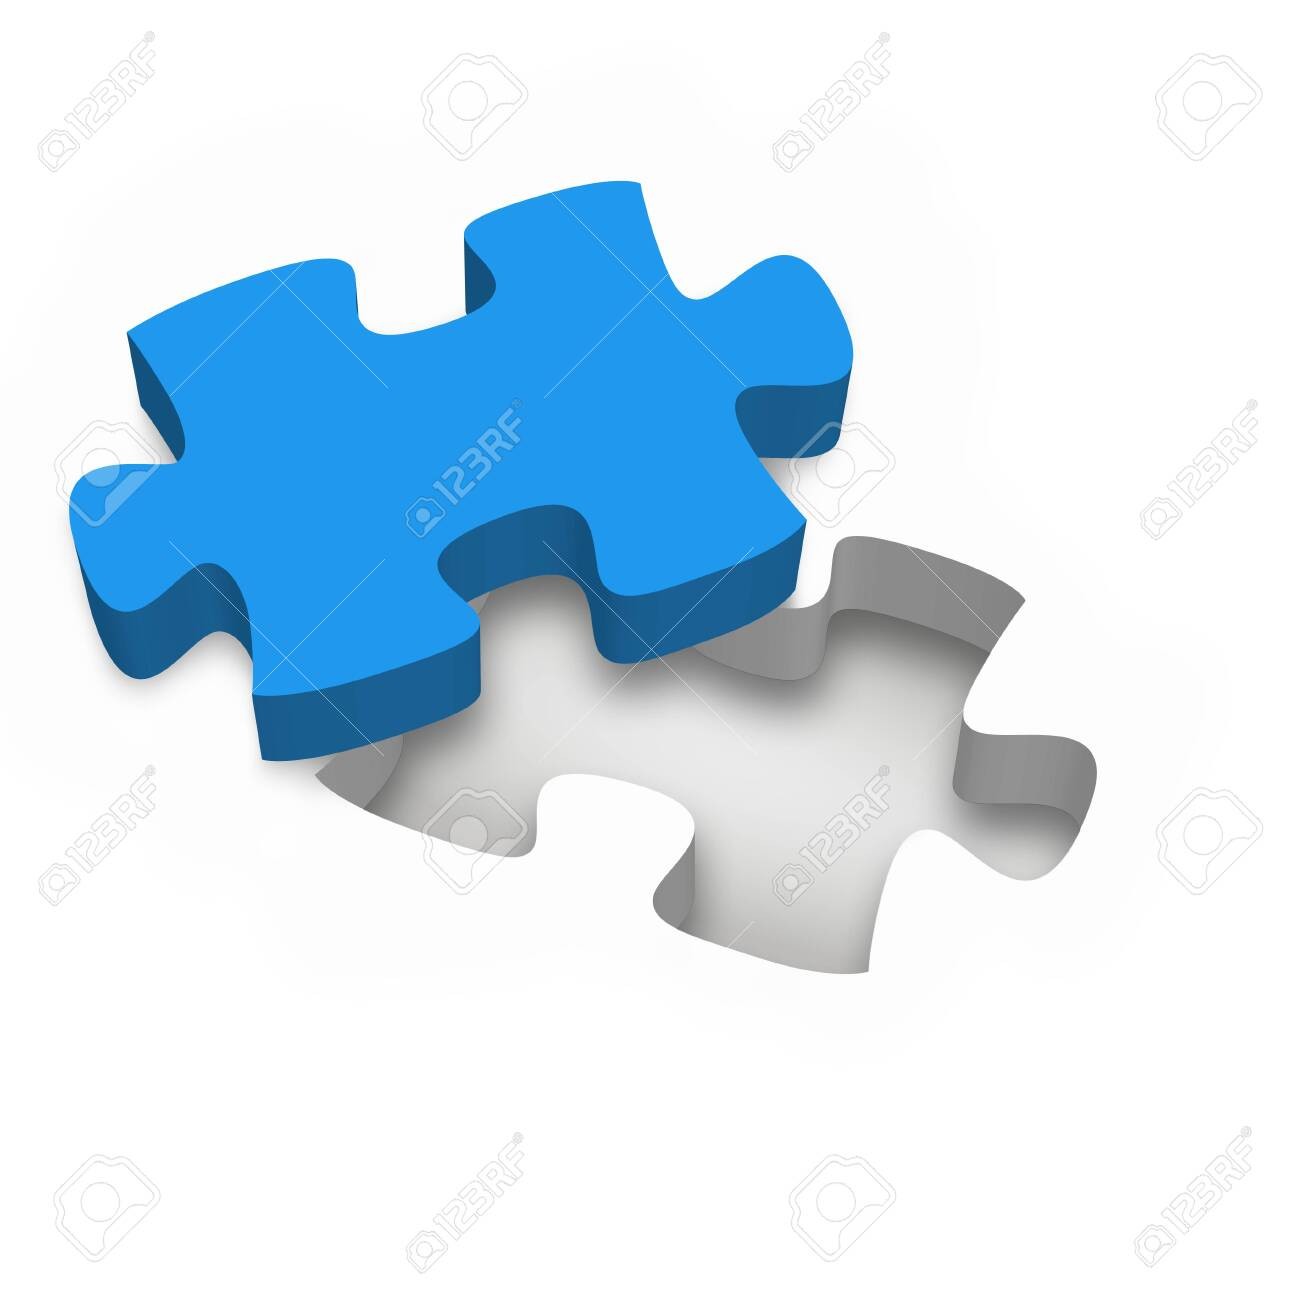 one single blue jigsaw puzzle piece on white background - business concept - 134291198